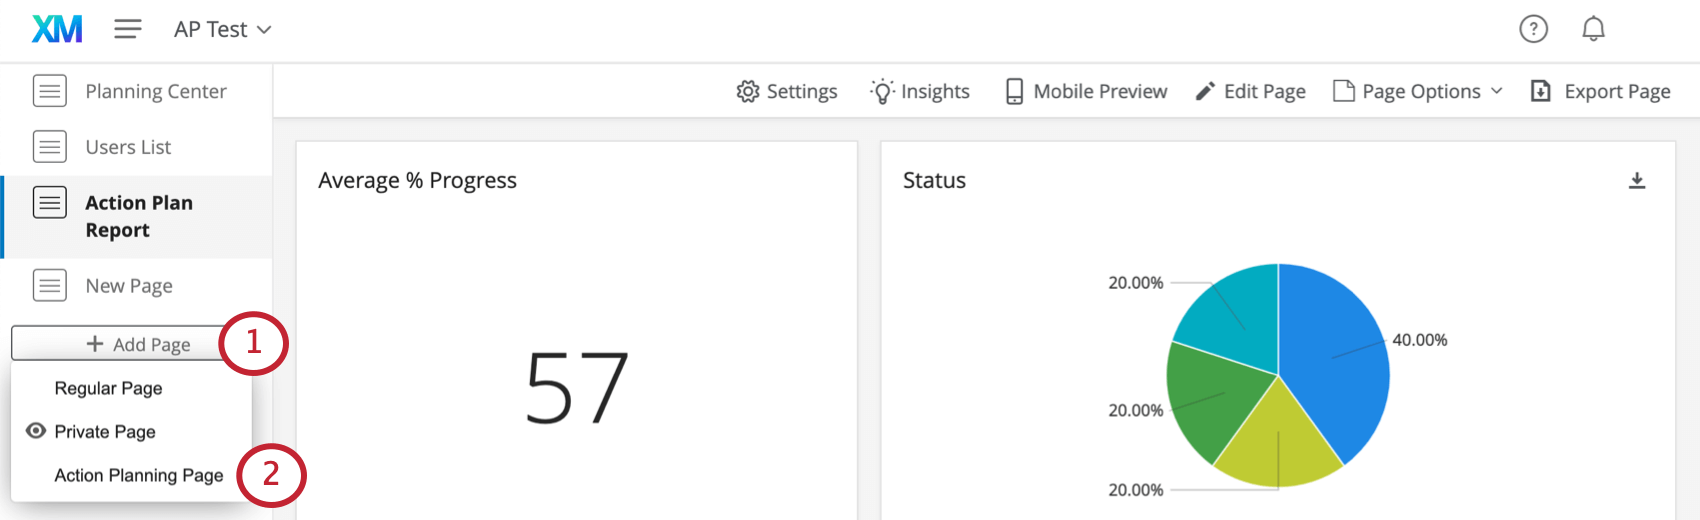 Adding an action planning page on the left side of the dashboard